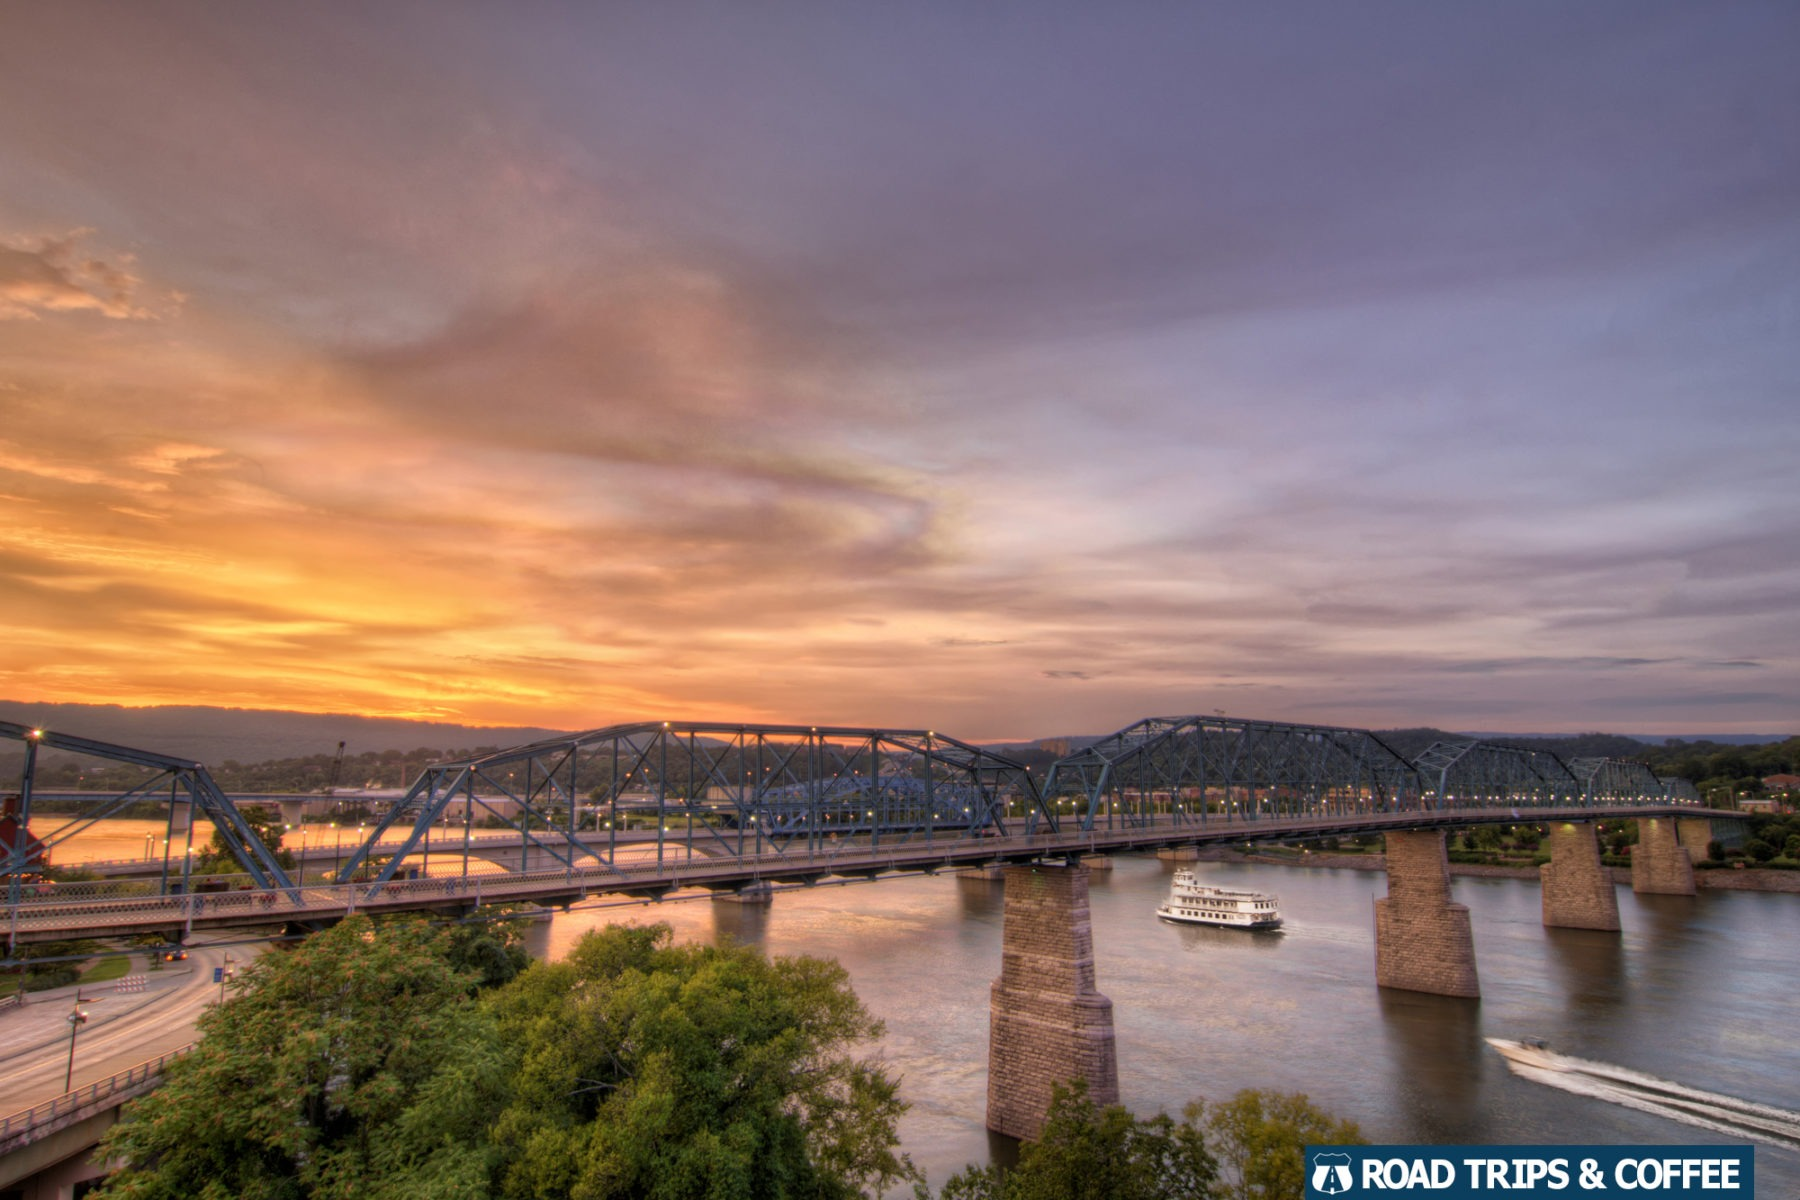 Vibrant orange sunset across the Walnut Street Bridge and Tennessee River in Chattanooga, Tennessee